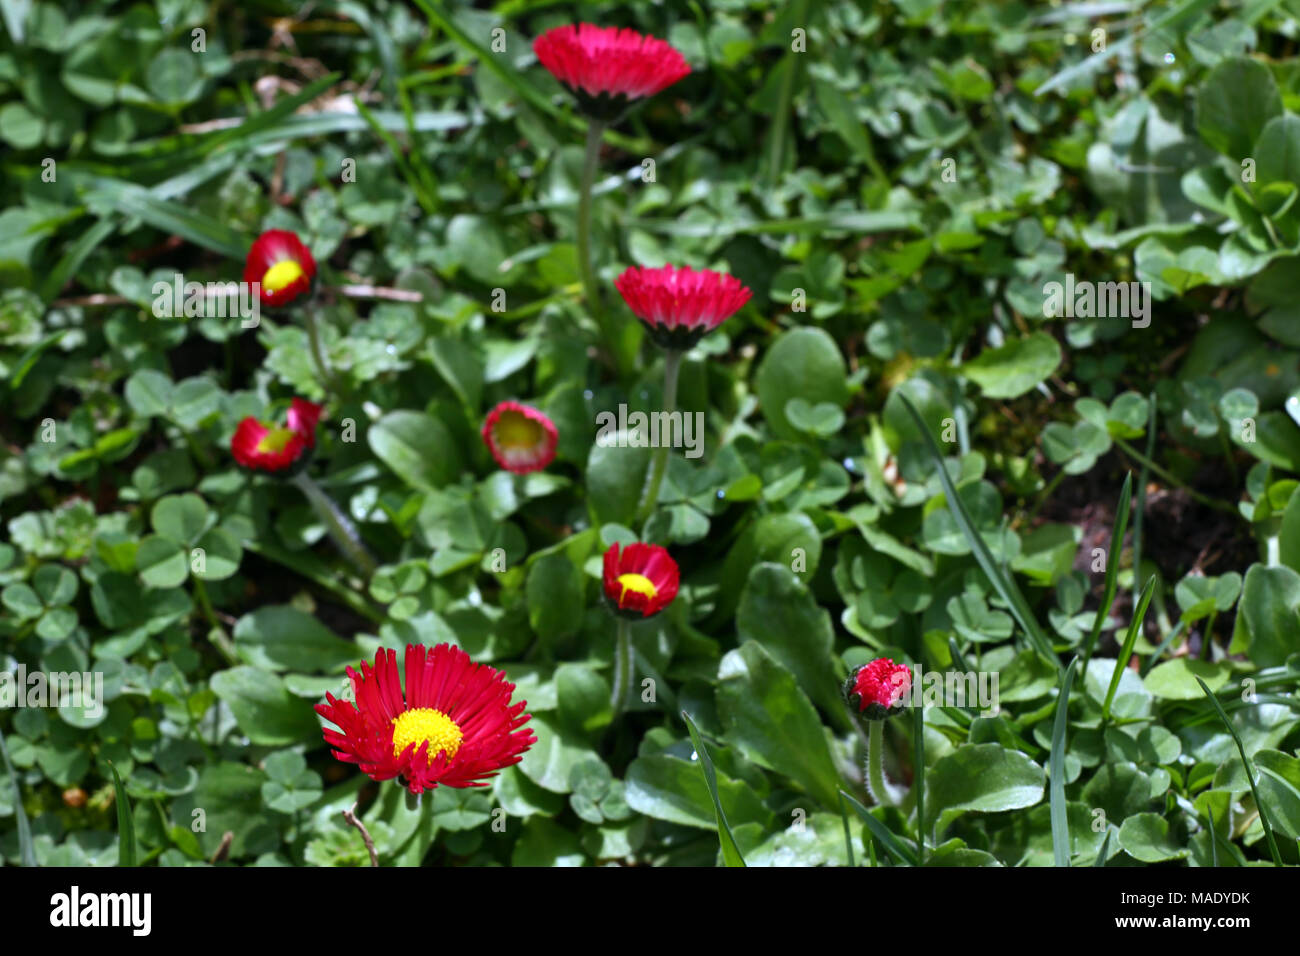 Daisy red daisy flowers in spring on a meadow in green grass in daisy red daisy flowers in spring on a meadow in green grass in nature marguerite flowers floral pattern coin flower spring and summer flowers ba izmirmasajfo